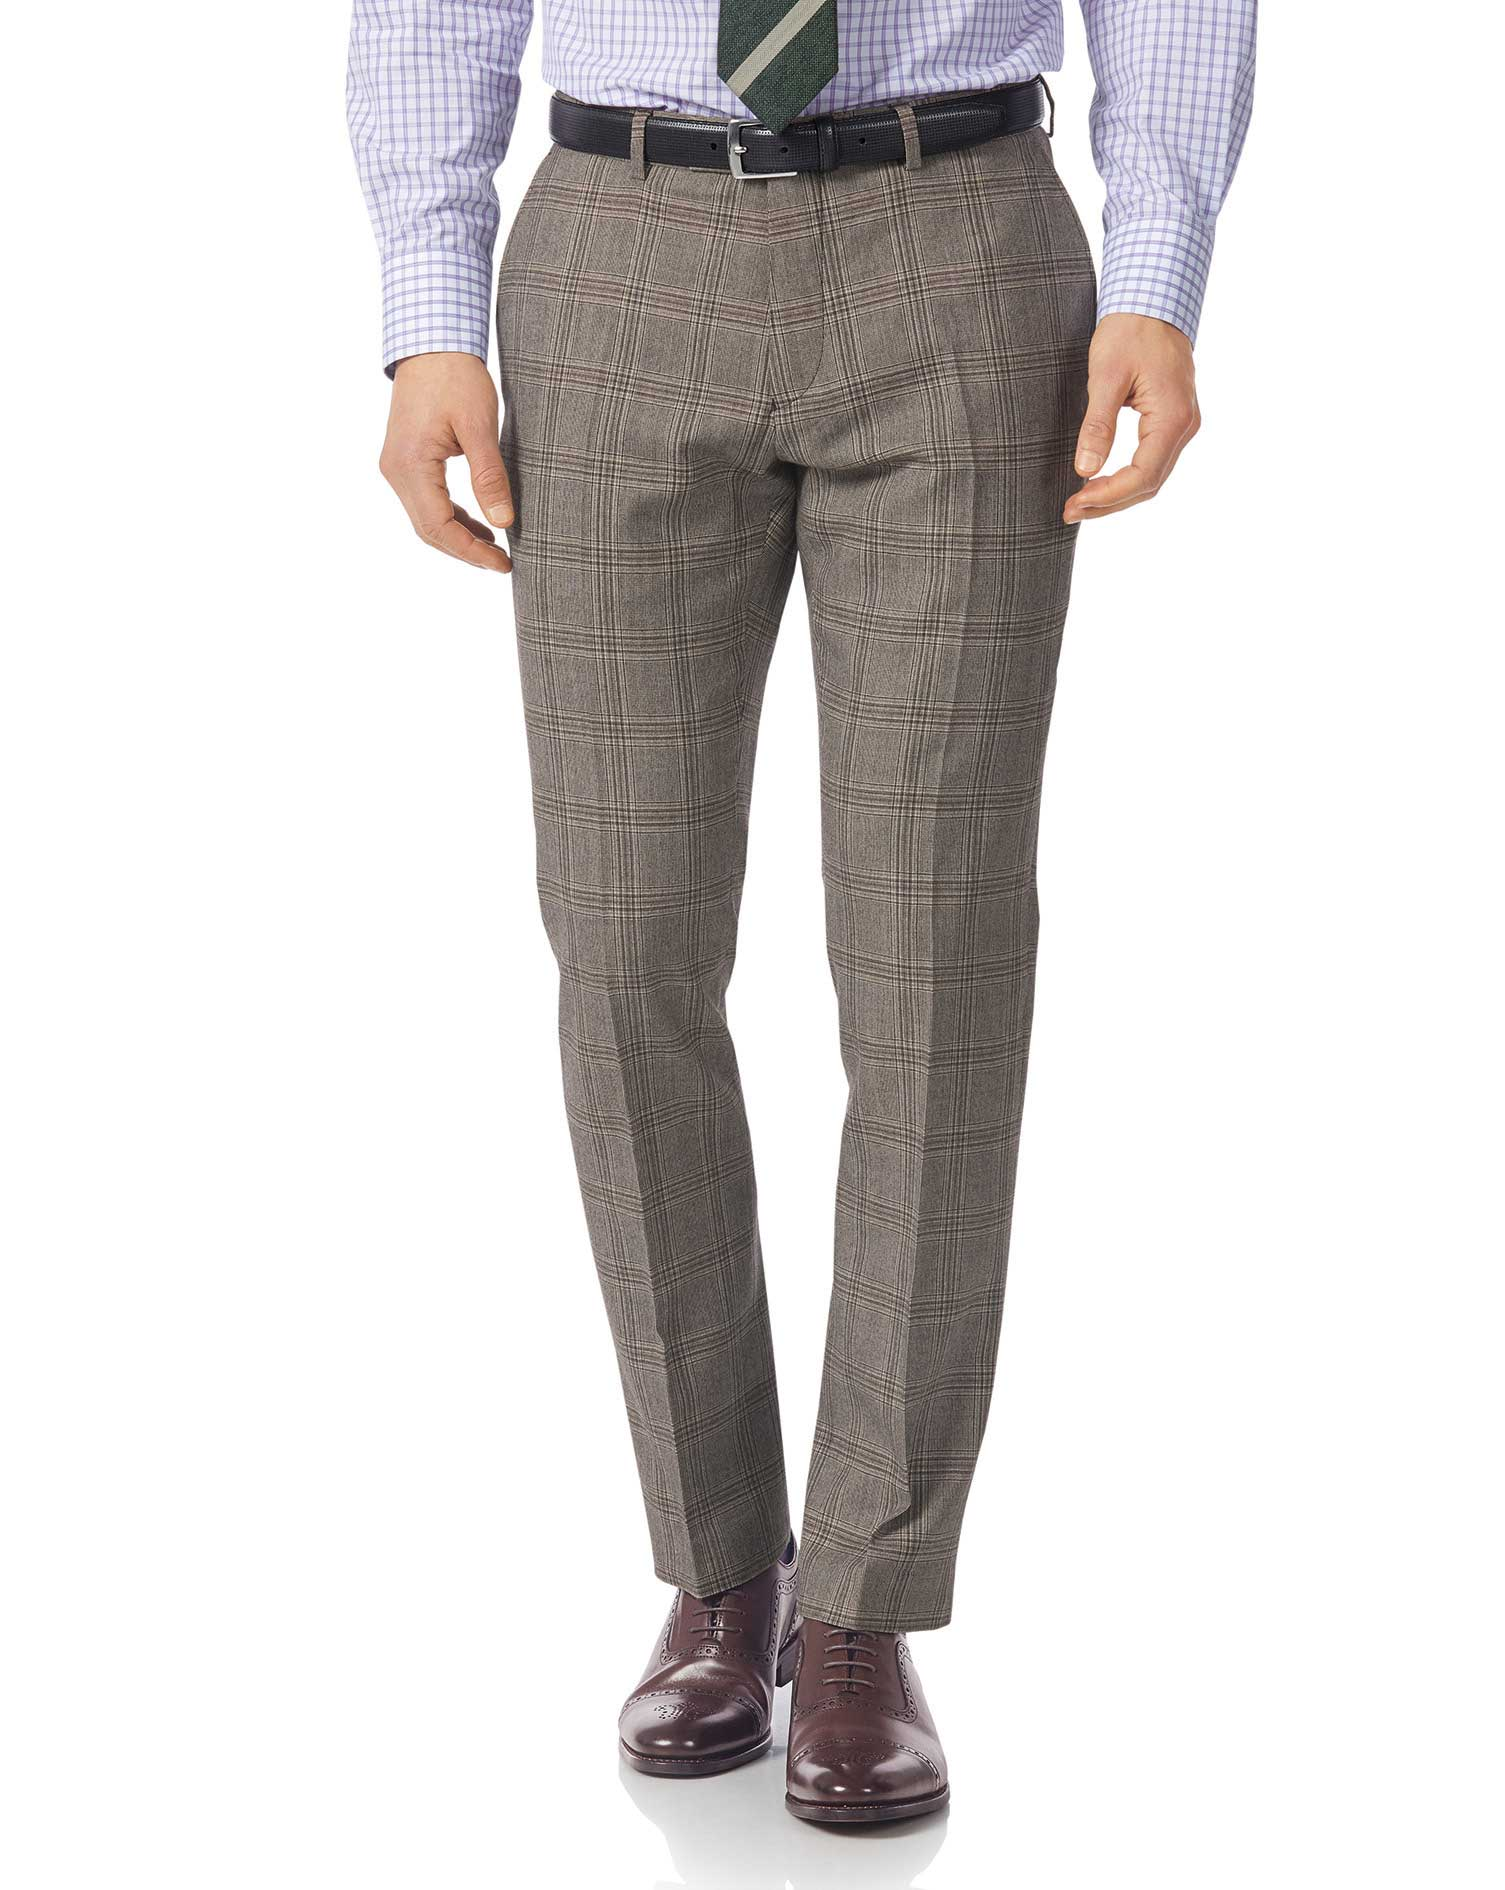 Grey Slim Fit British Prince Of Wales Check Luxury Suit Trousers Size W38 L38 by Charles Tyrwhitt